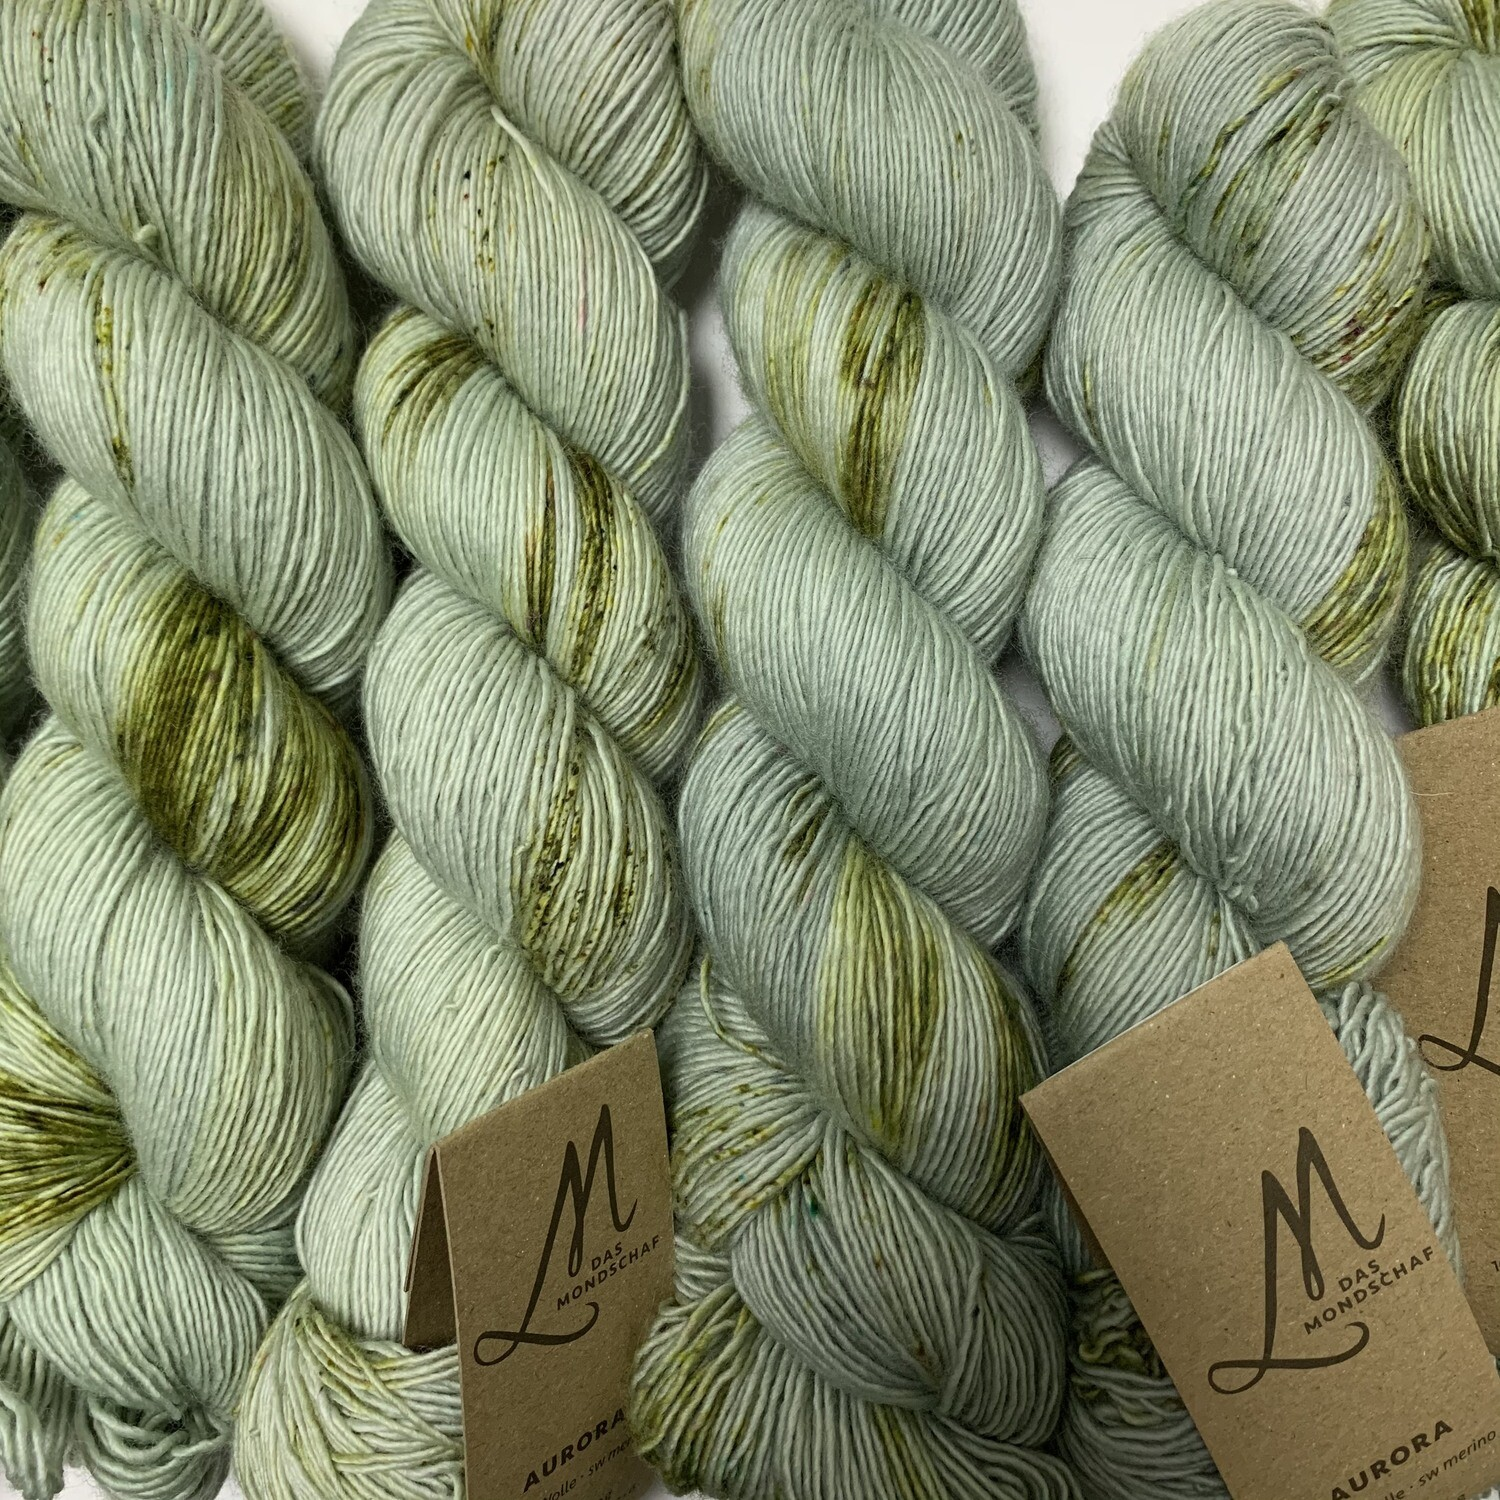 Das Mondschaf Merino Single | Underwood